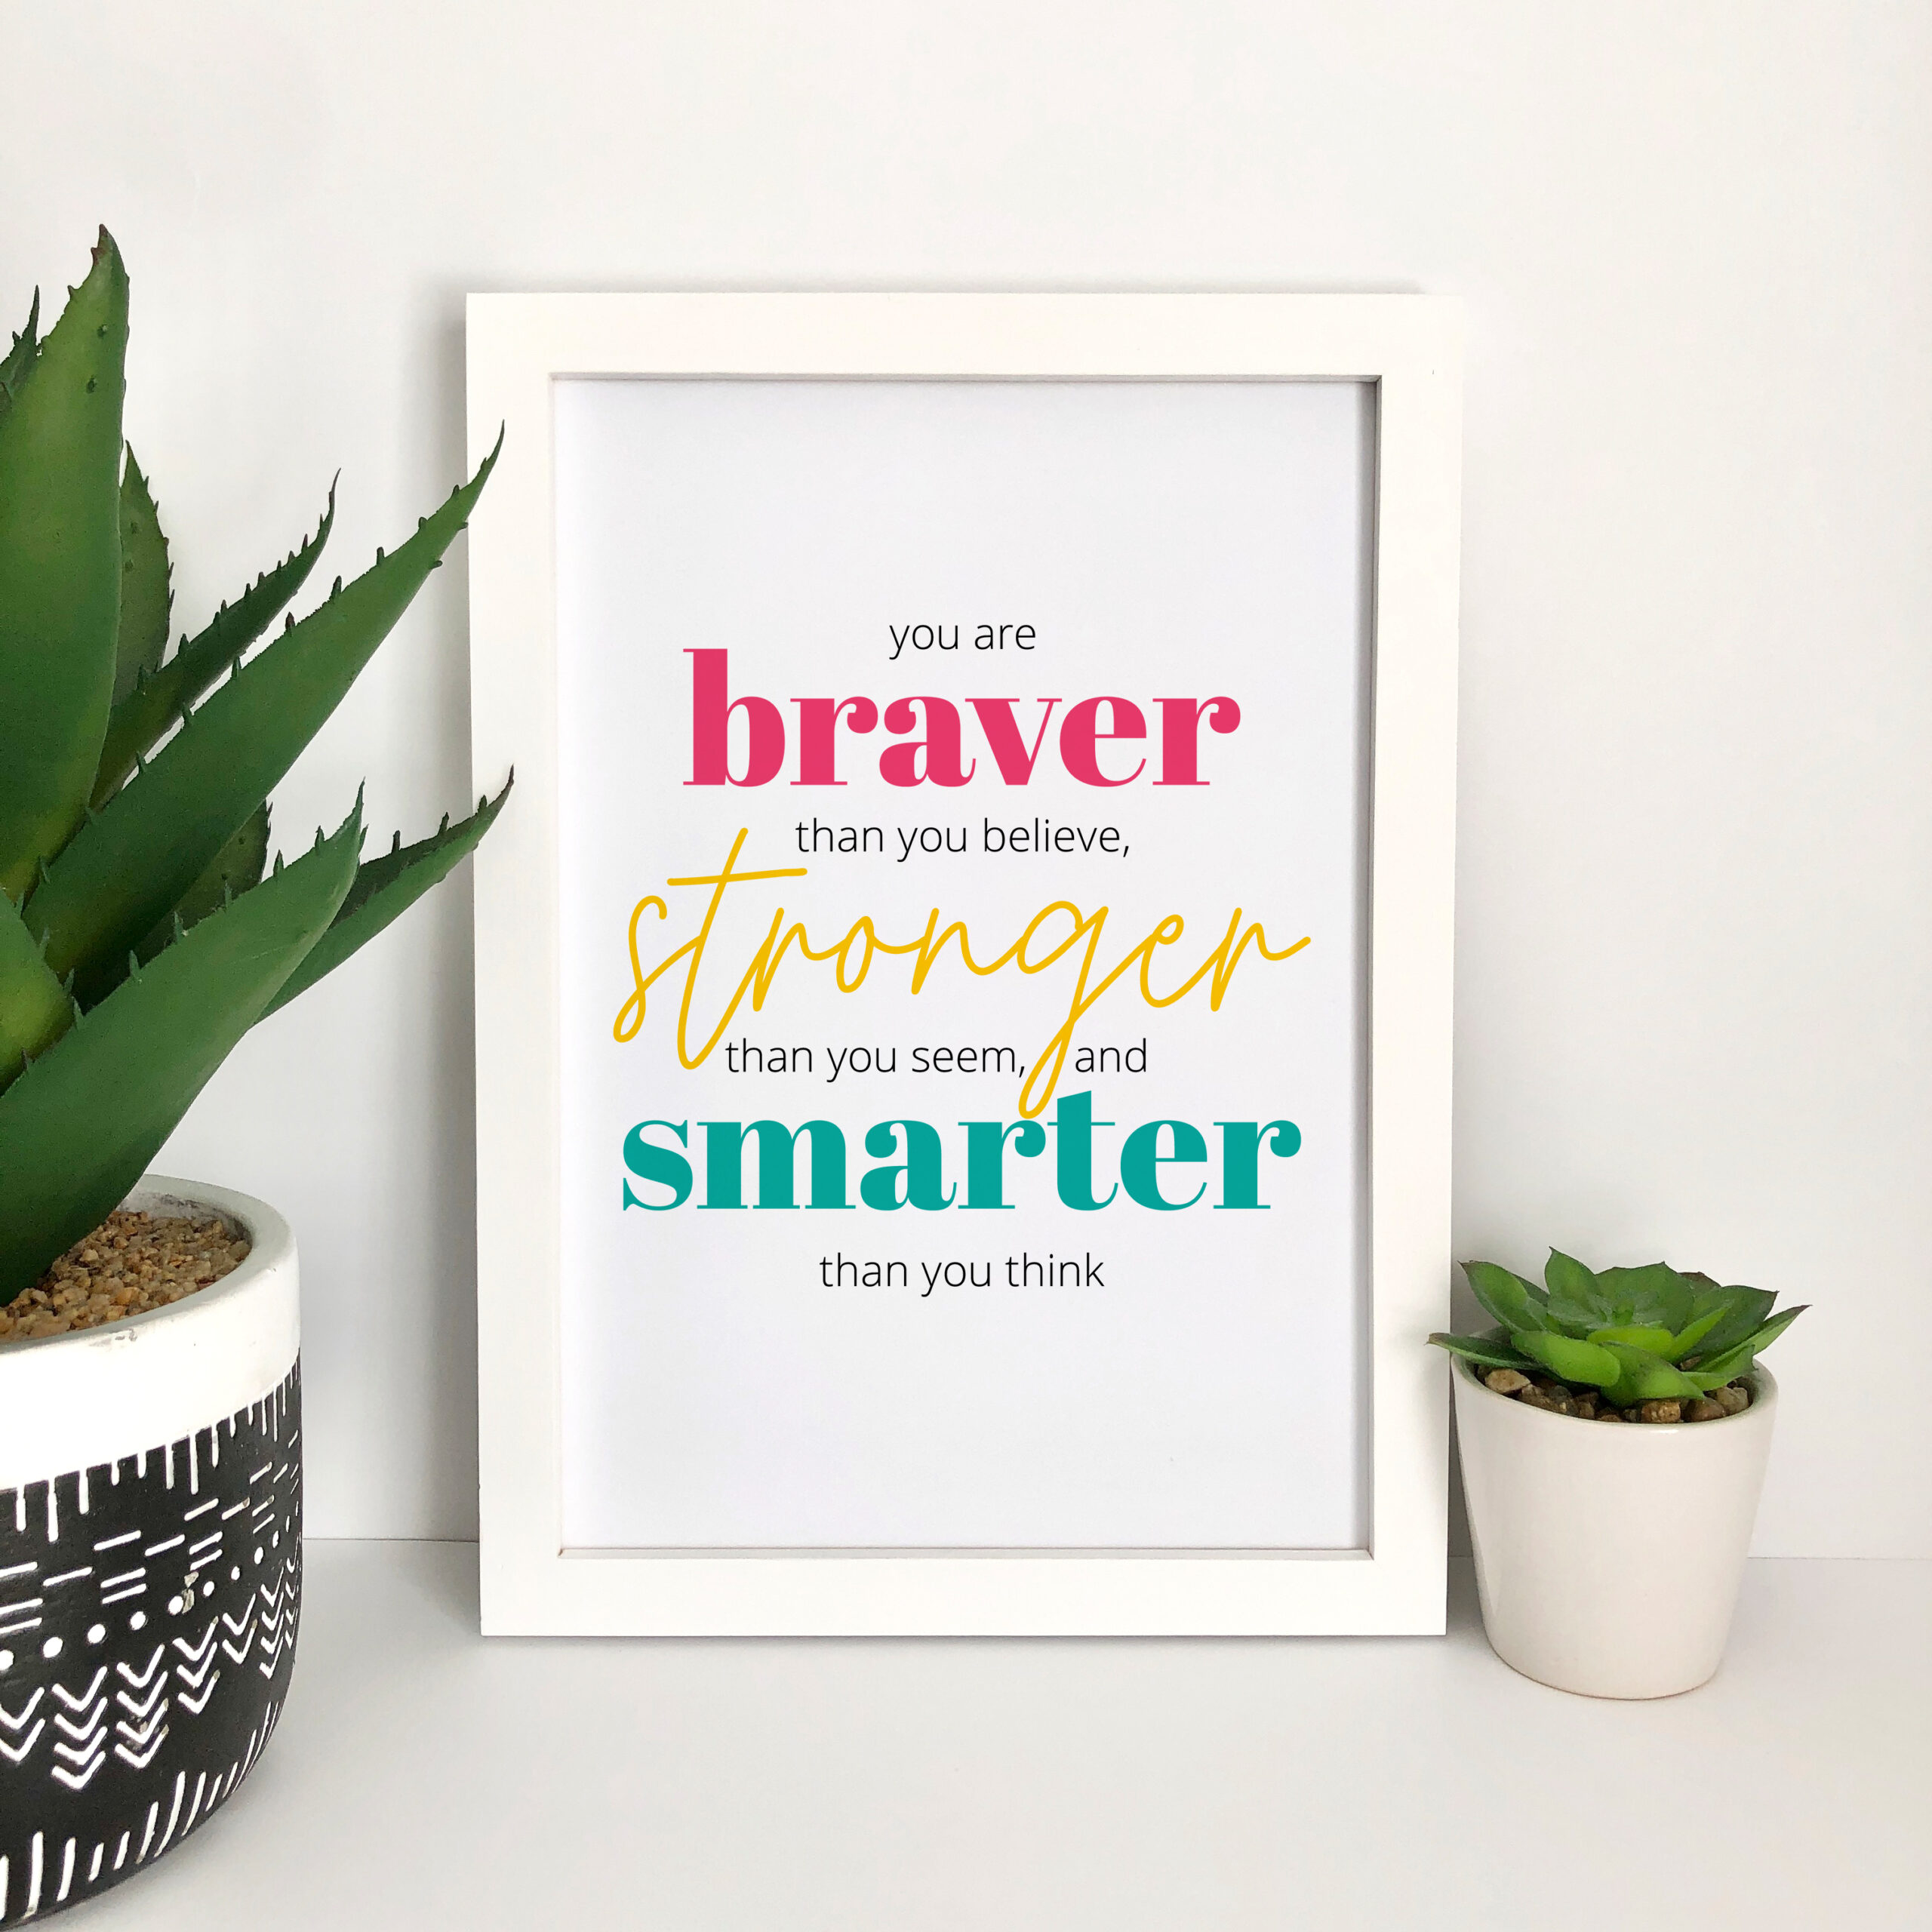 Art print in a white frame along with potted indoor plants. The design is a typography quote about Being Braver, Stronger, and Smarter